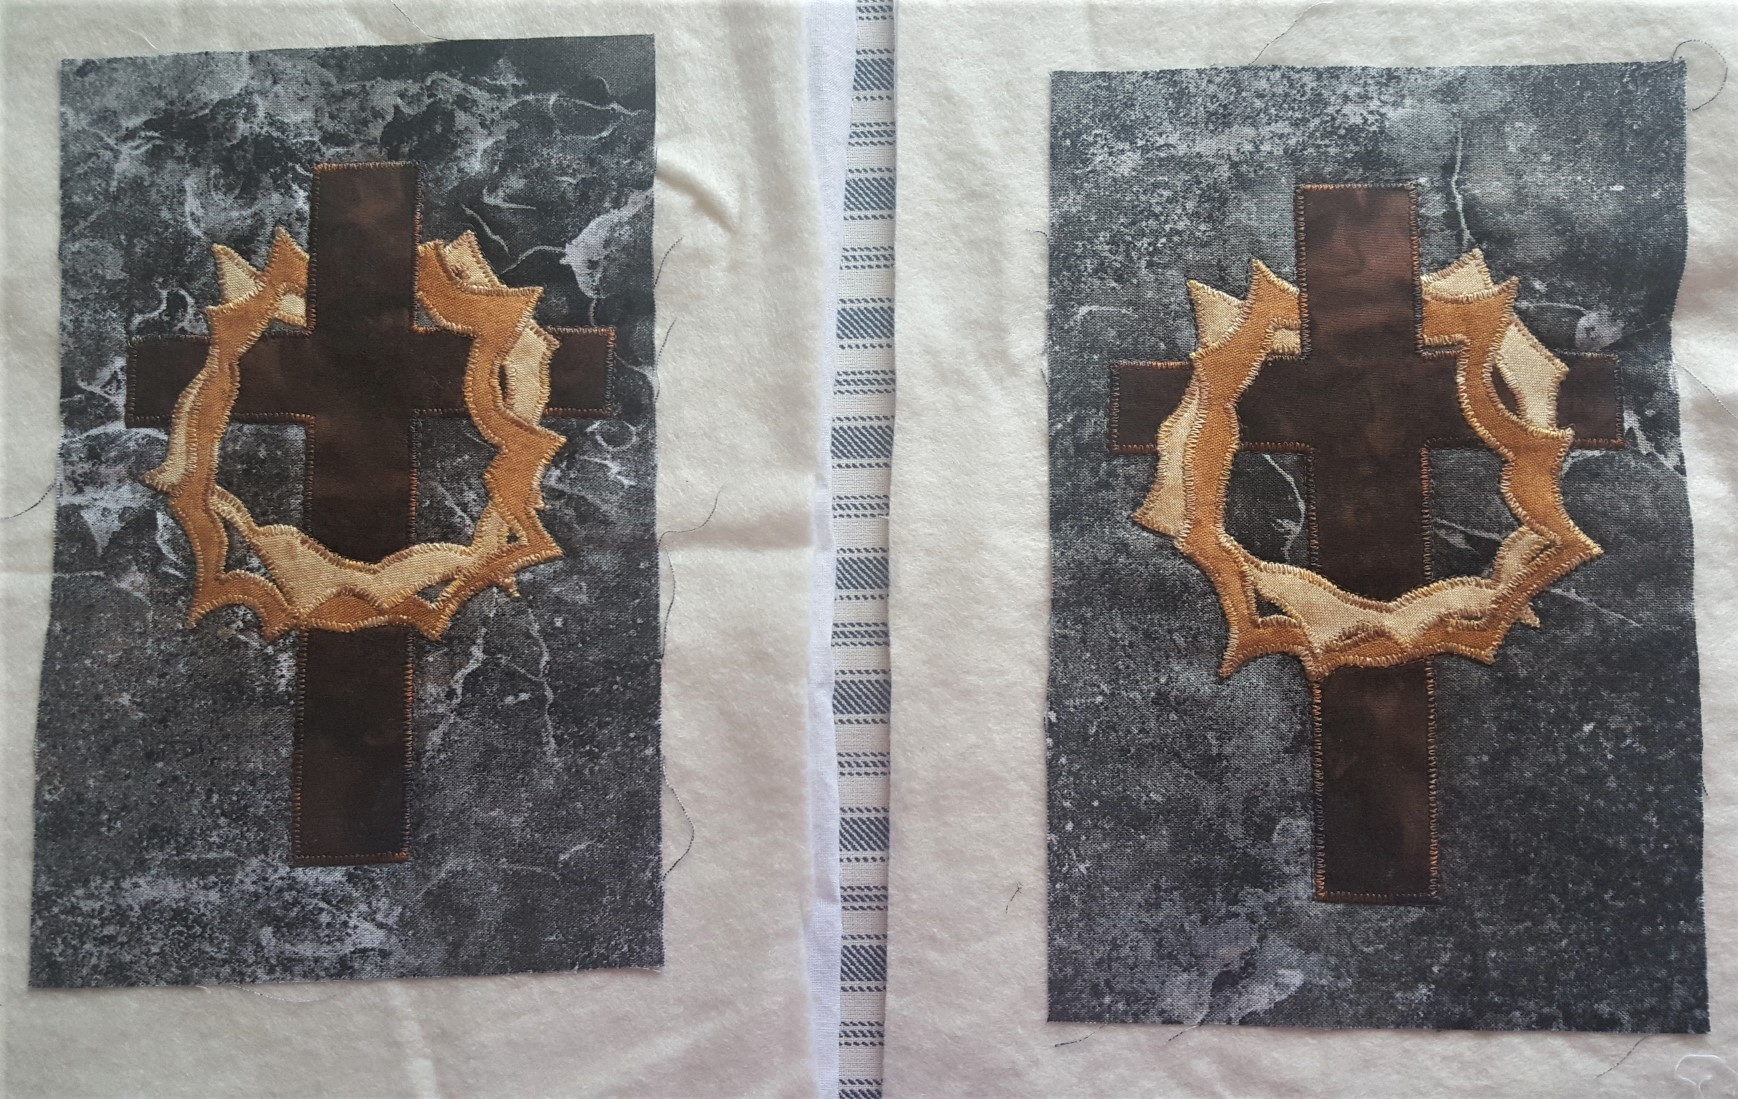 cross and crown of thorns inserts